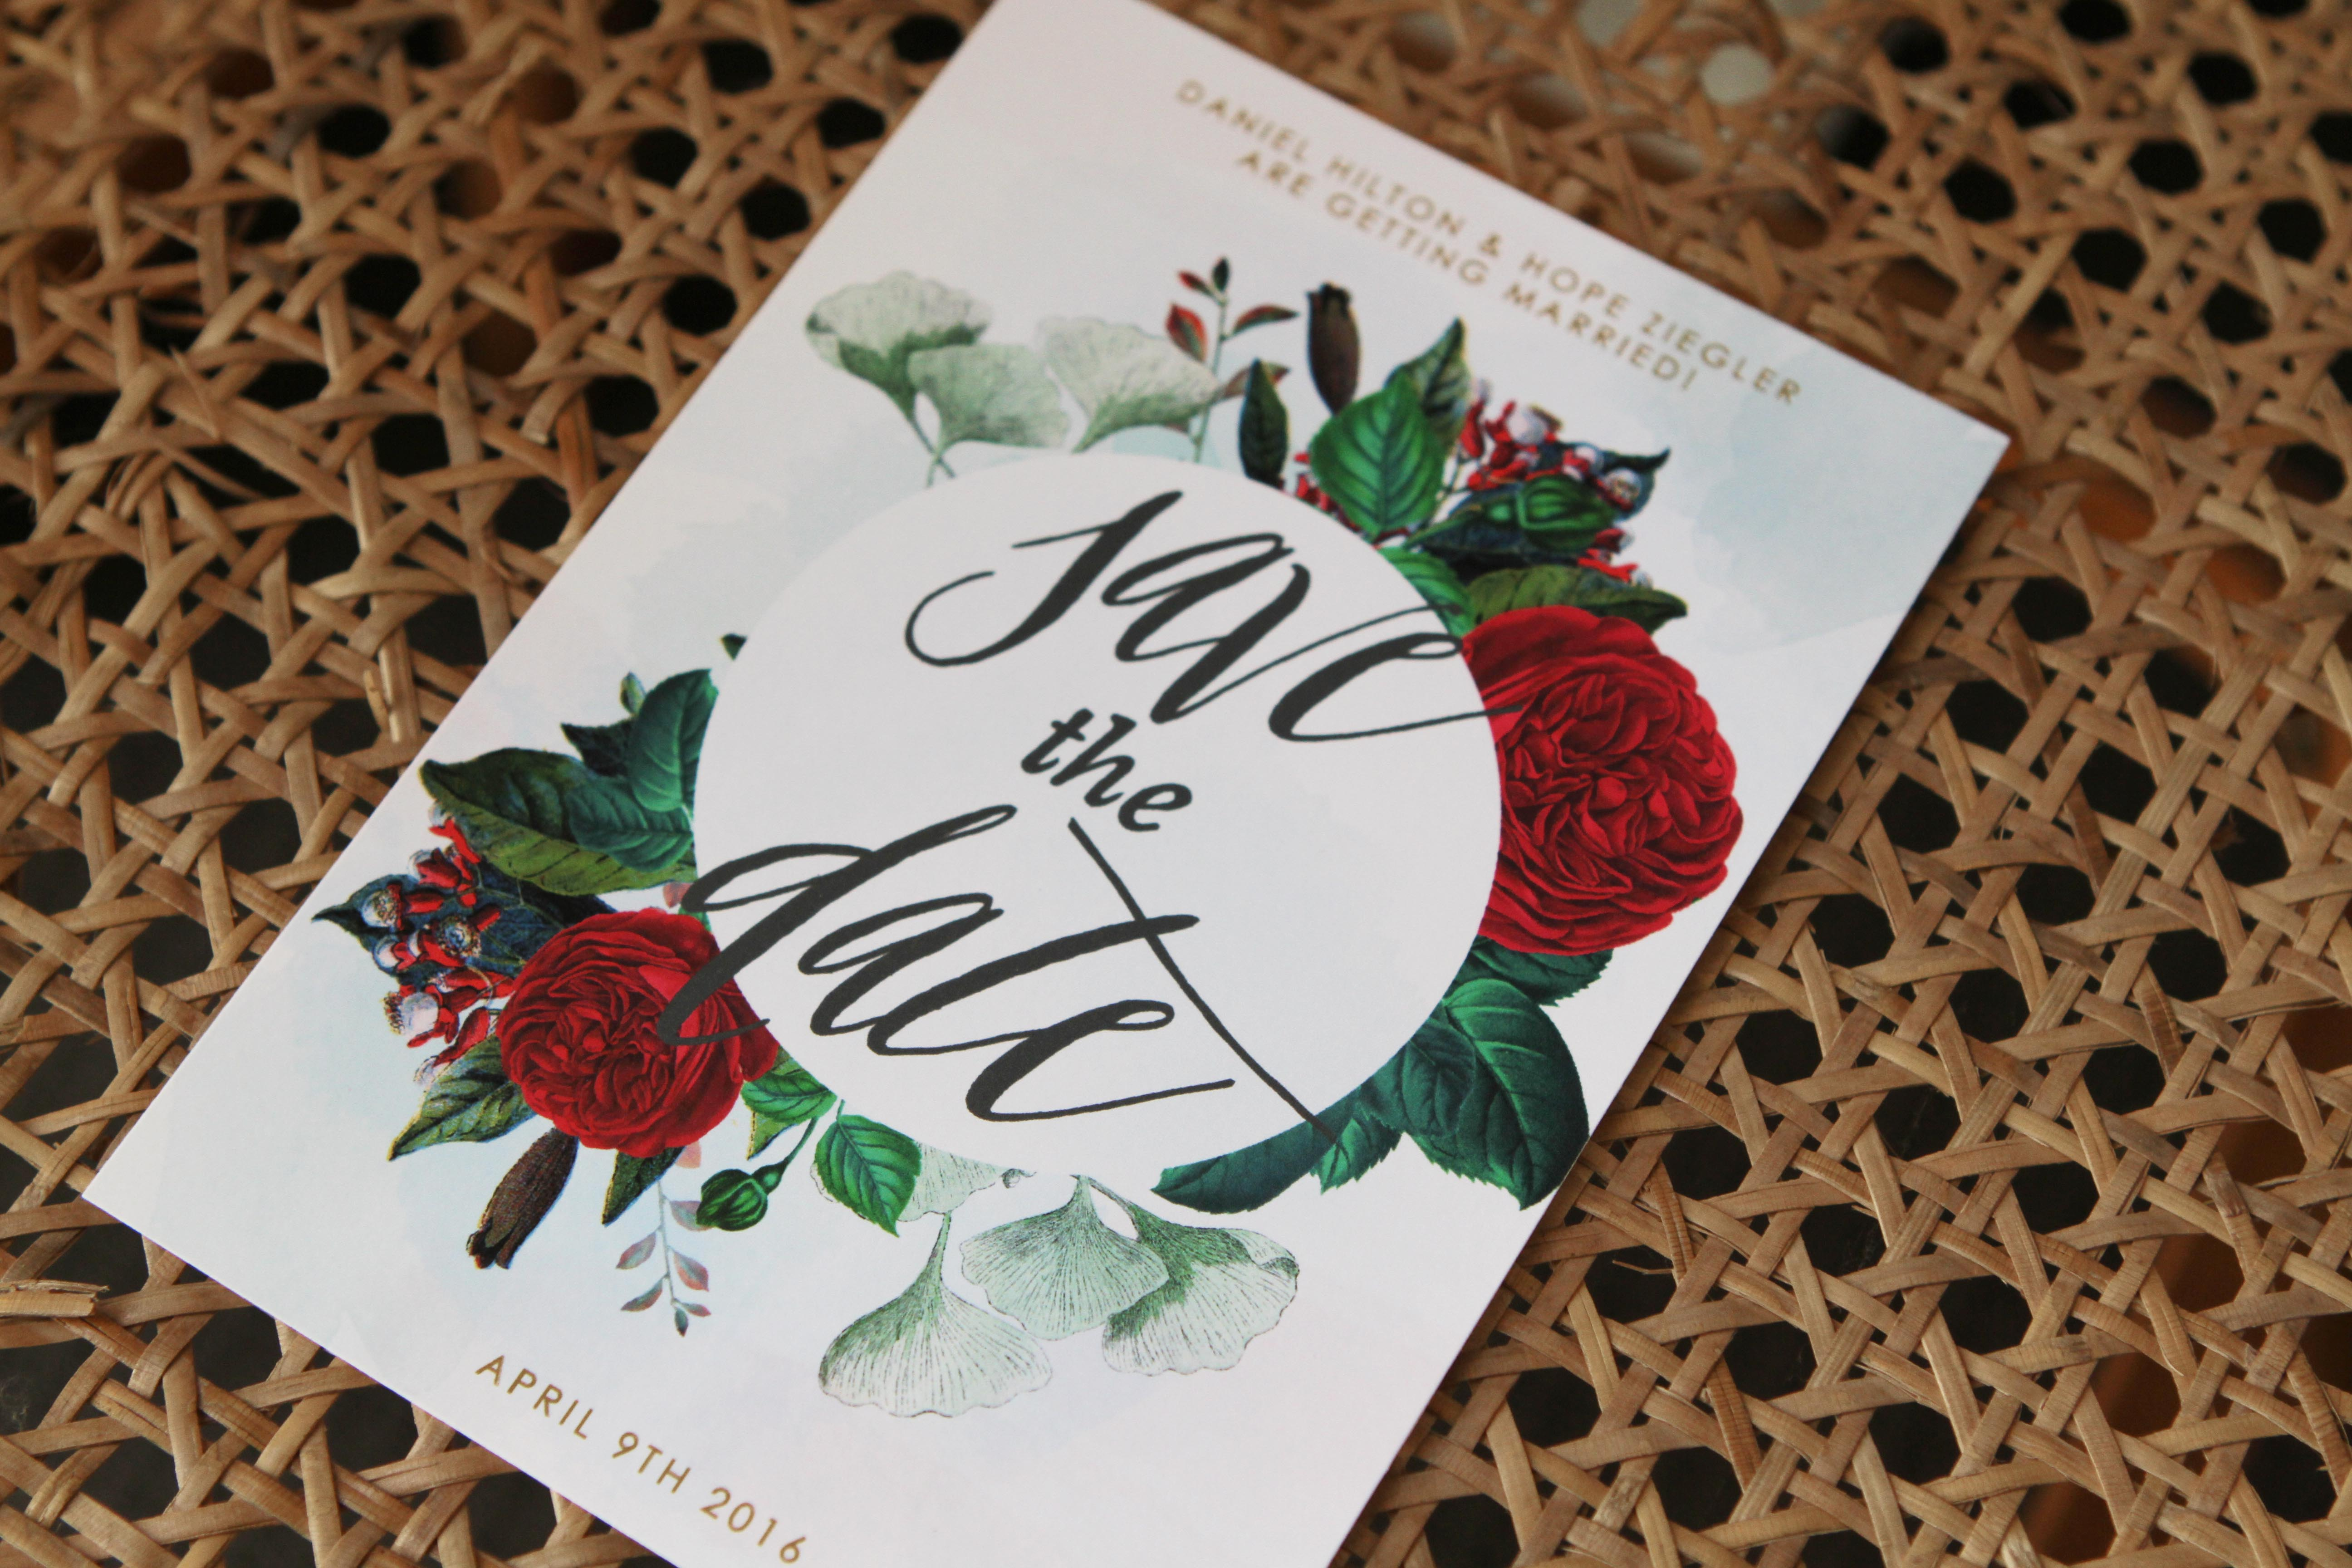 marsala red mulberry floral vintage botanical wedding invitations save the dates calligraphy modern chic glam rose leaves greenery stationery australia perth adelaide melbourne sydney sail and swan